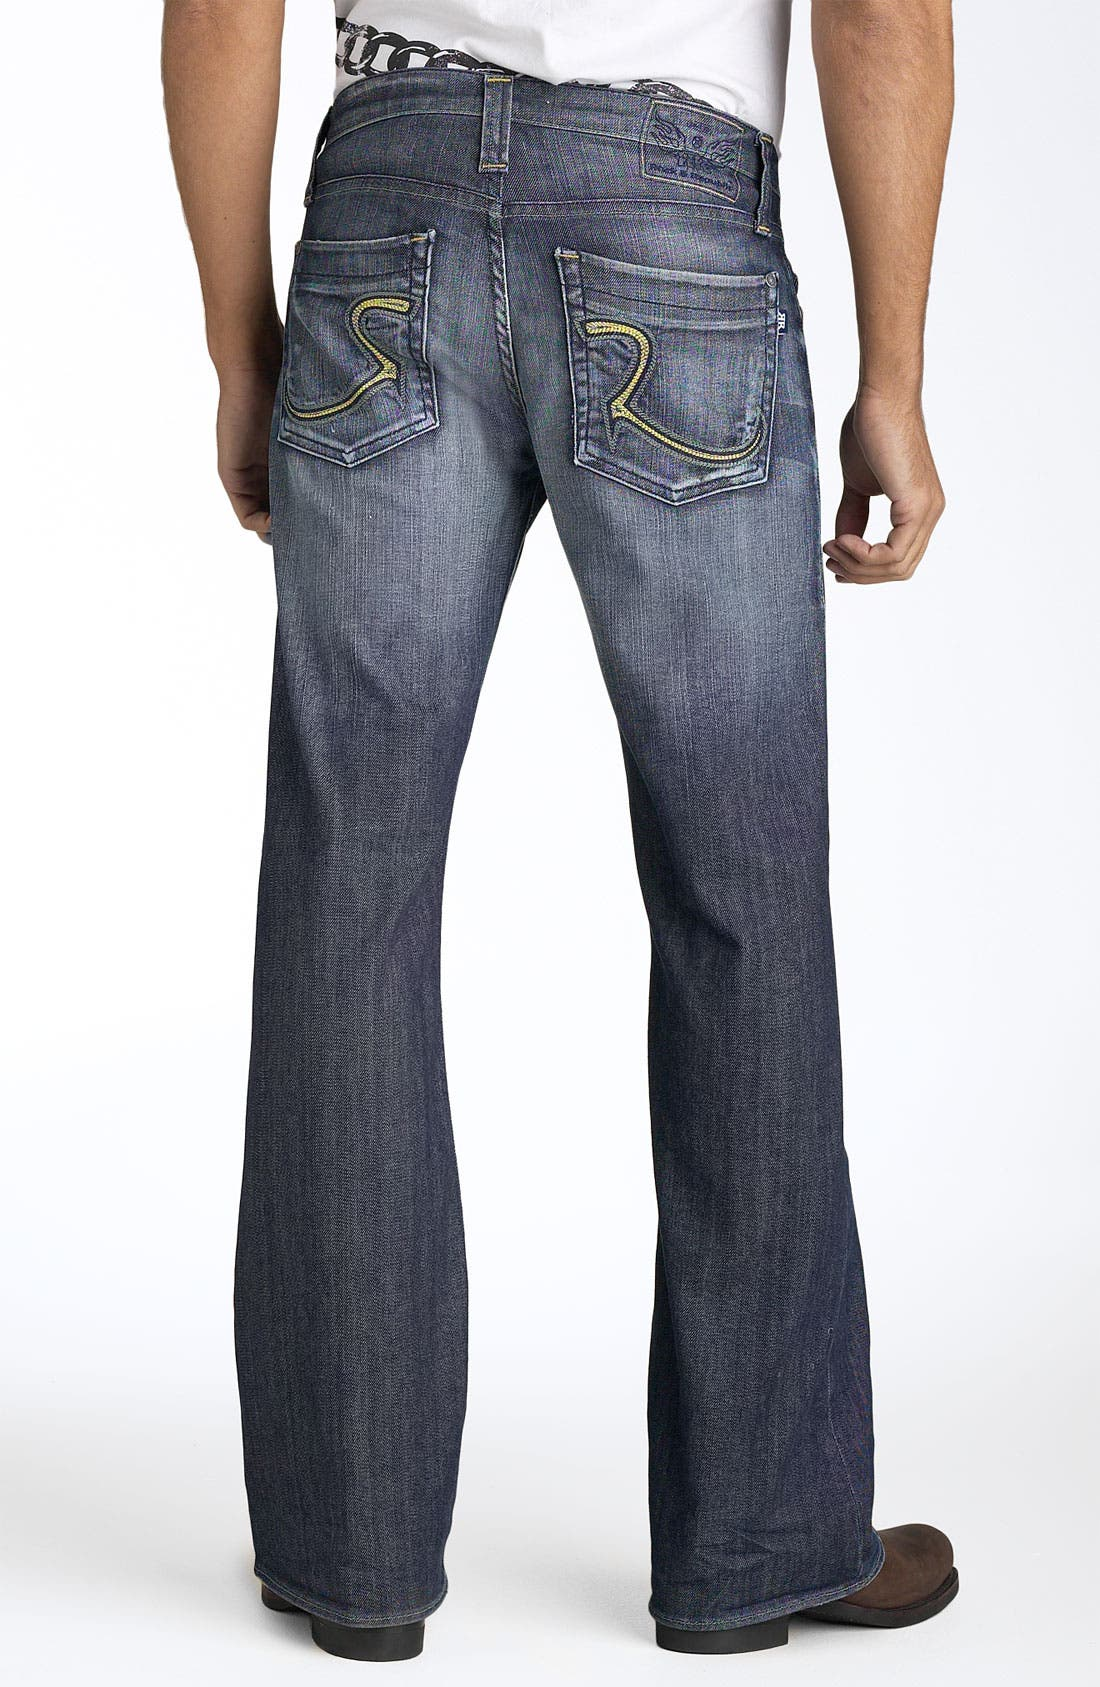 'Floyd' Relaxed Bootcut Jeans,                             Main thumbnail 1, color,                             420